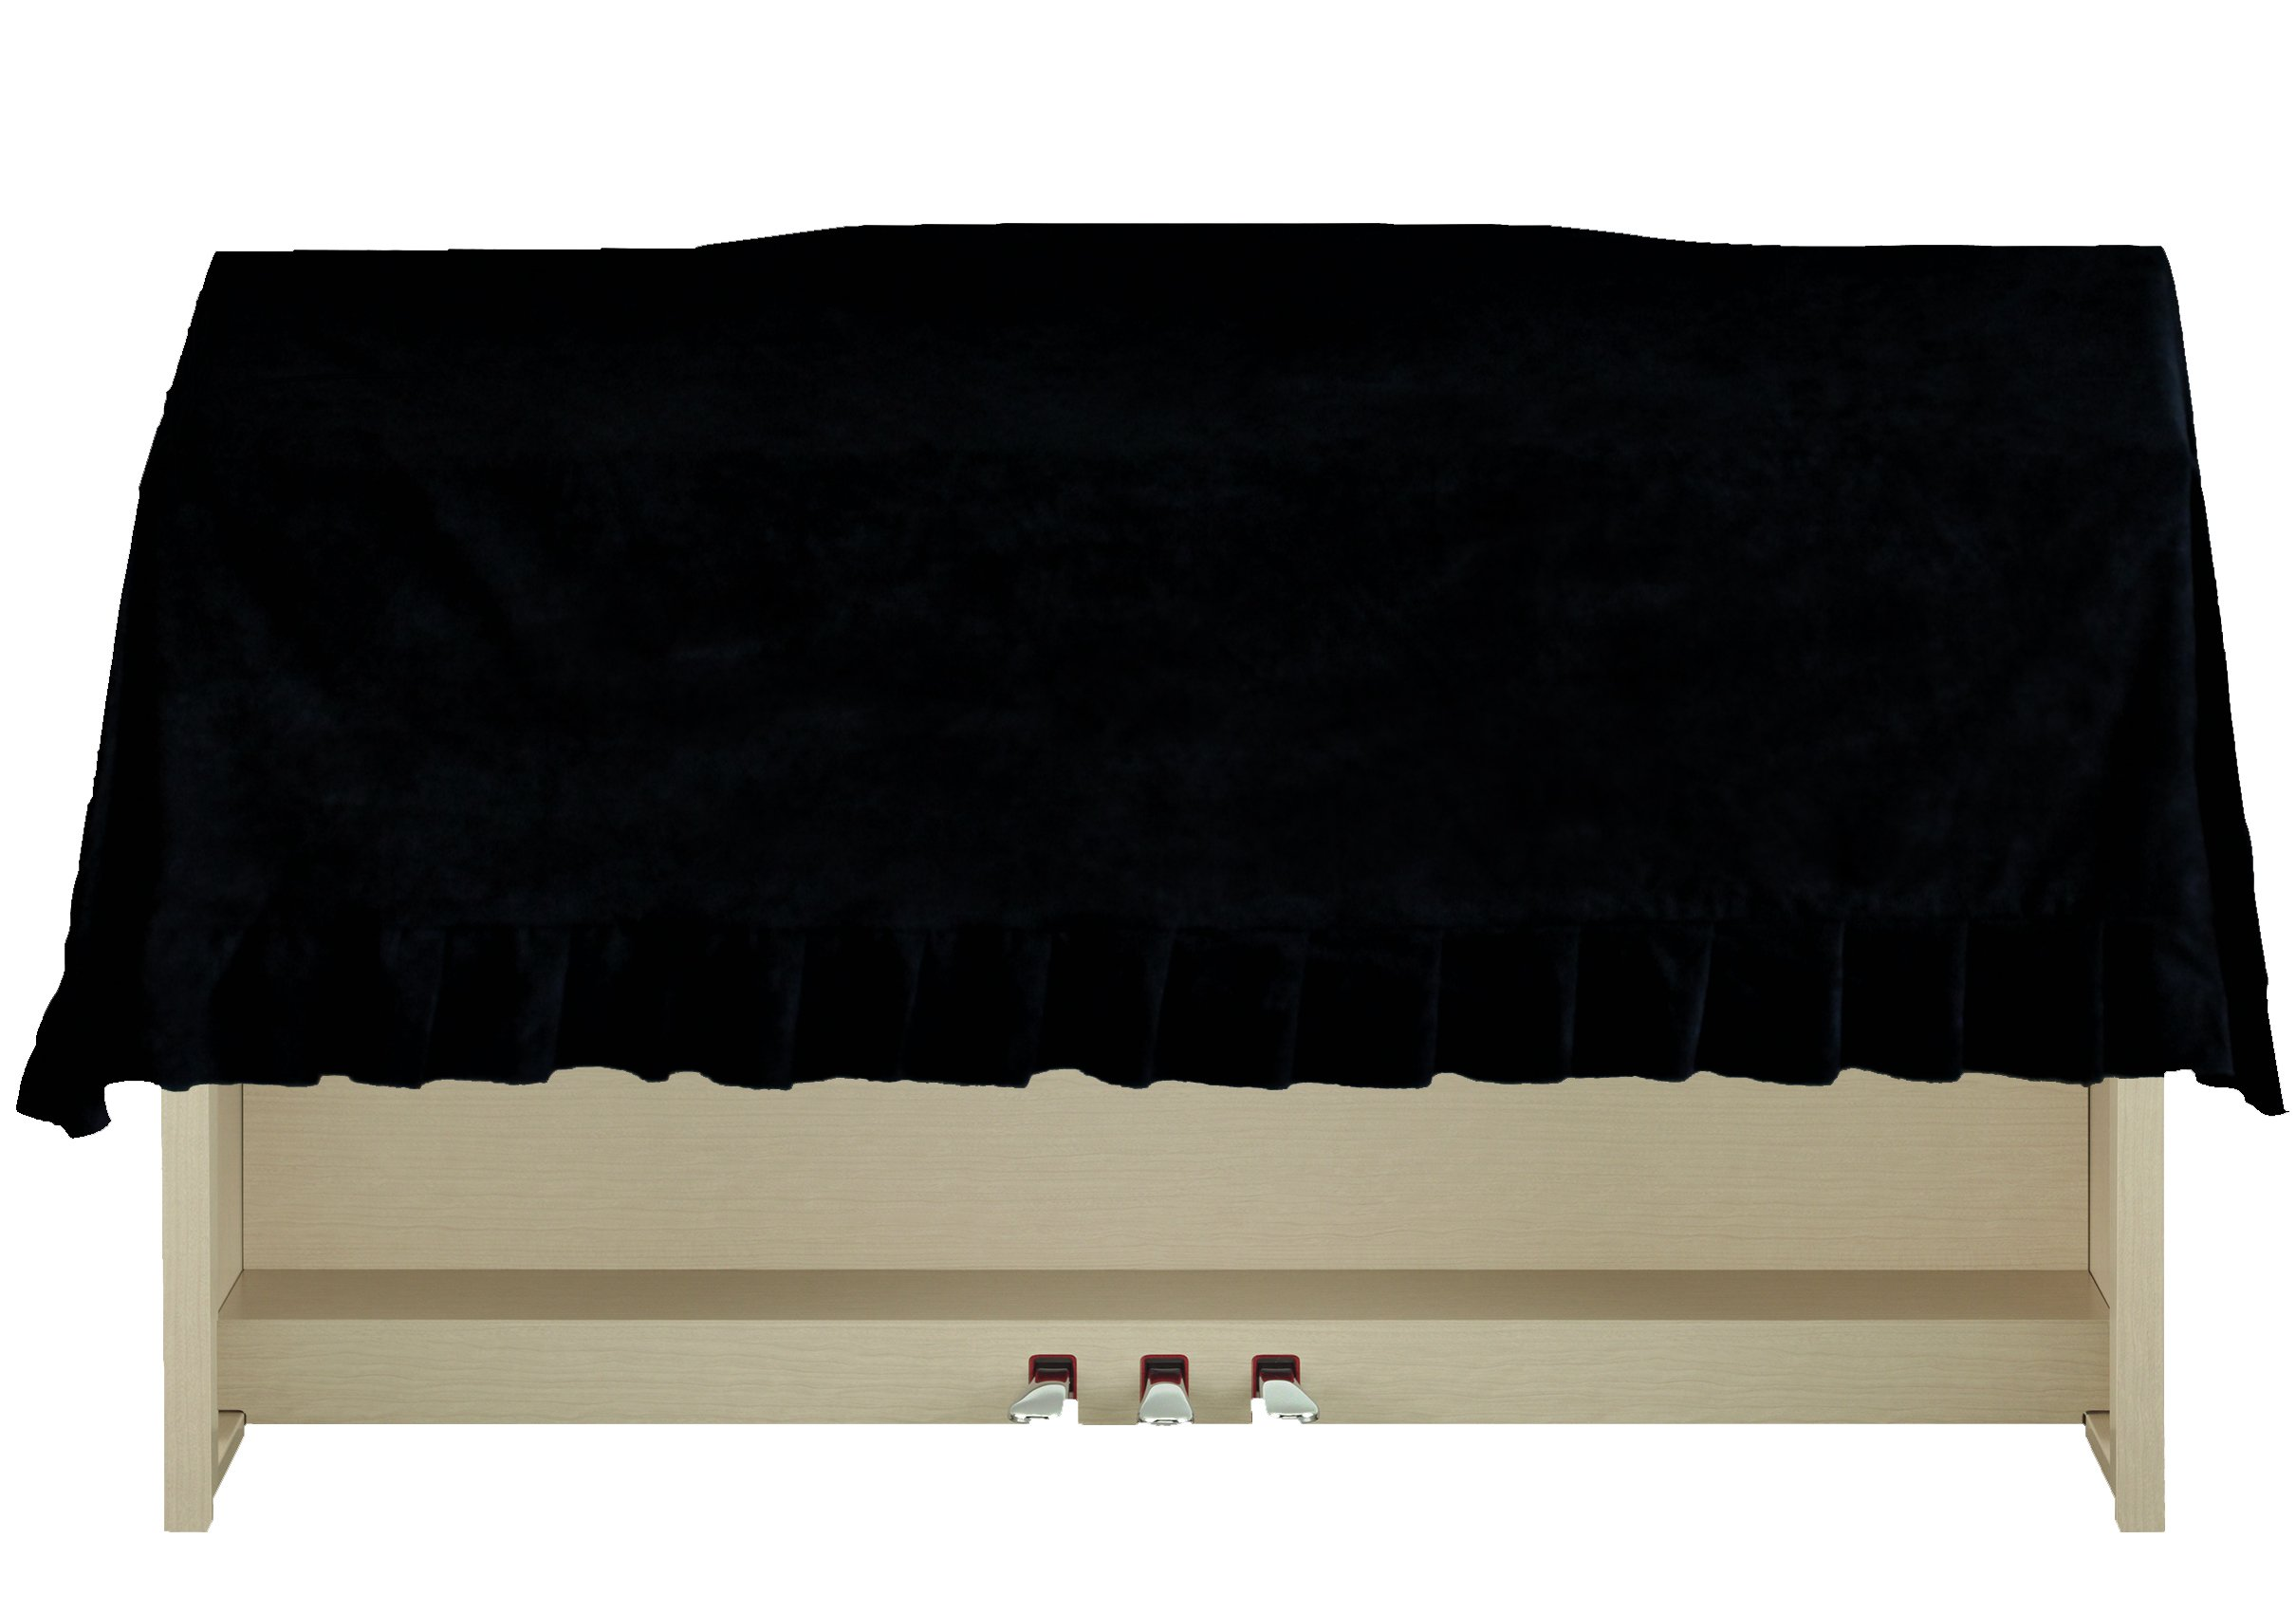 Clairevoire Clavinova Digital Piano Dust Cover | Highly water-resistant | Handcrafted with luxury-grade Premium Velvet | Fits Yamaha Clavinova CVP CLP series (57.8 in [ 147cm ])